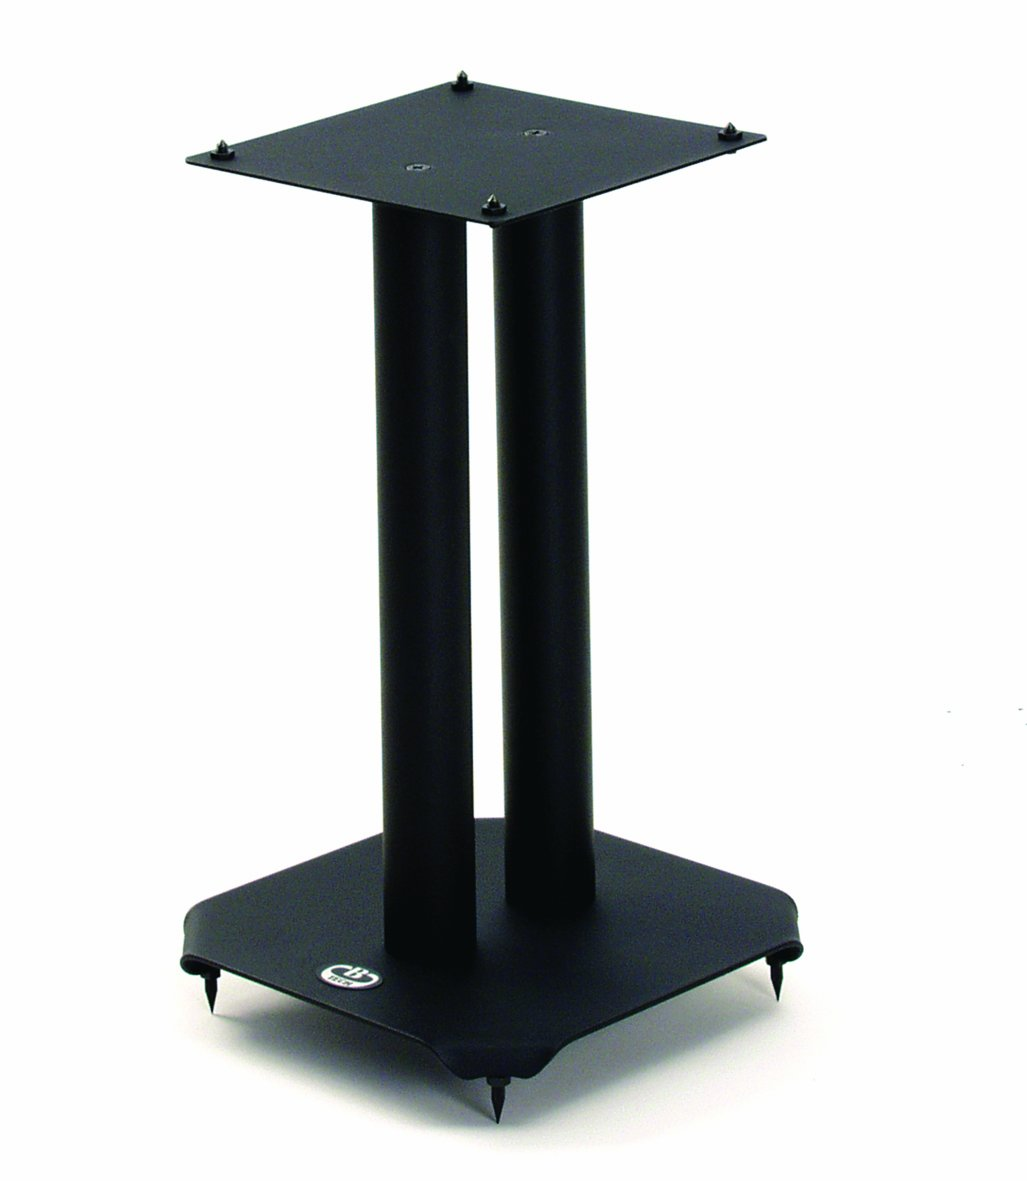 B-Tech BT604 - Atlas™ Sound Isolating Loudspeaker Floor Stands 40cm (15.8